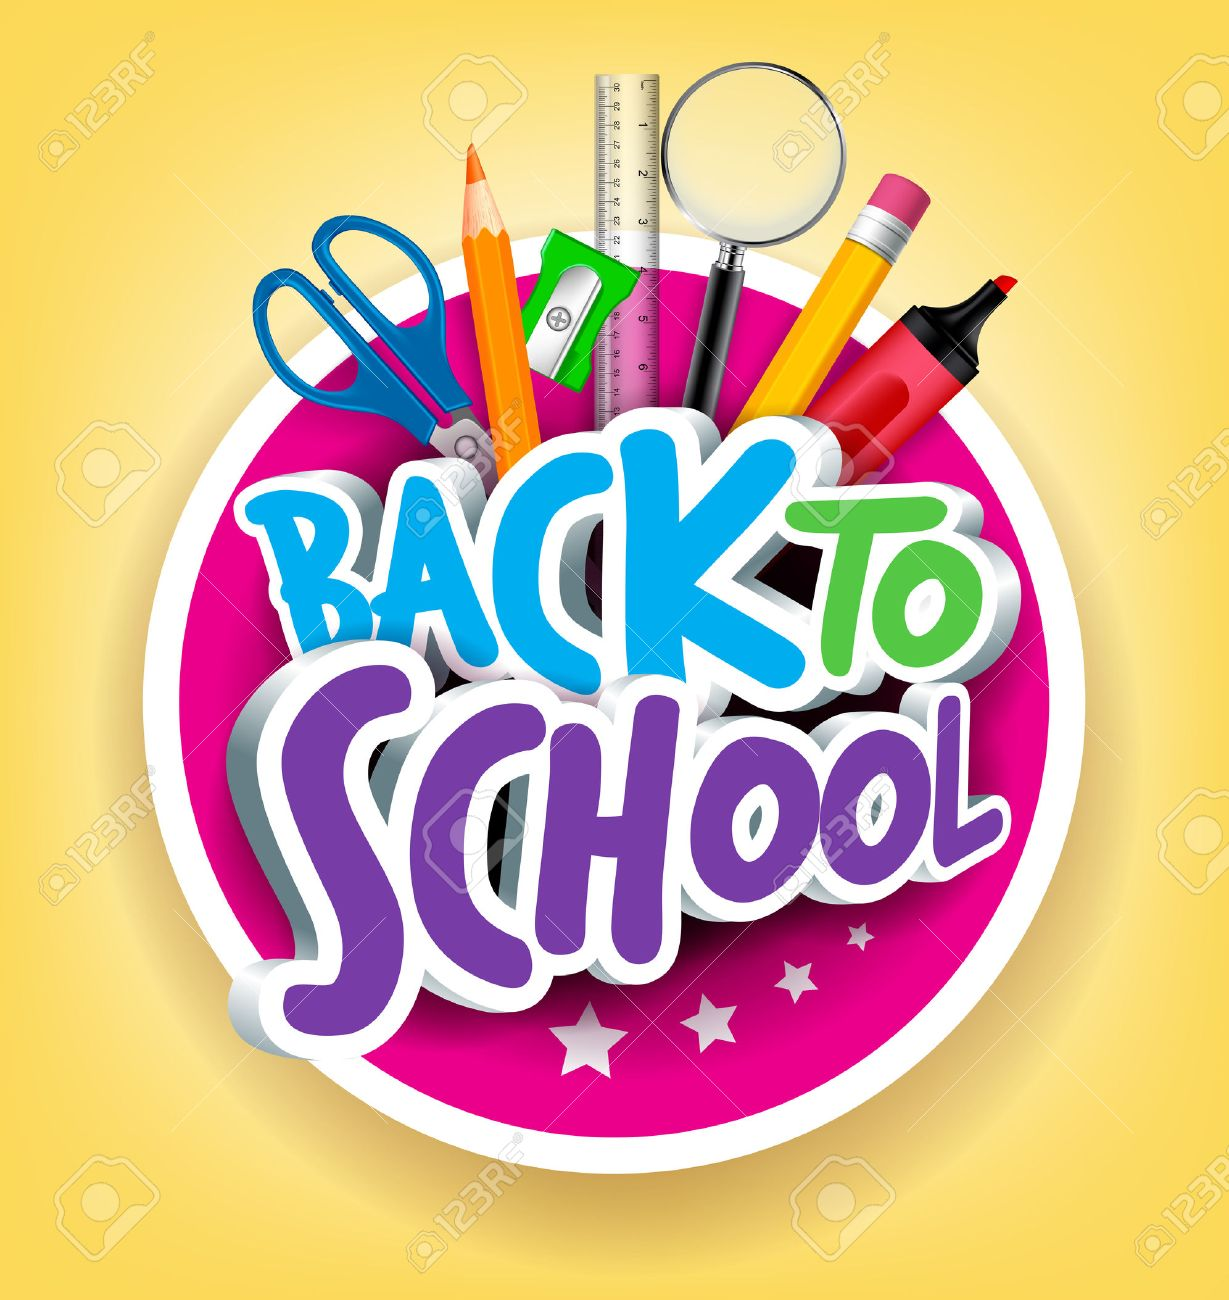 Colorful Realistic 3D Back to School Title Texts with School Items in a Circle for Poster Design in Yellow Background. - 43287094